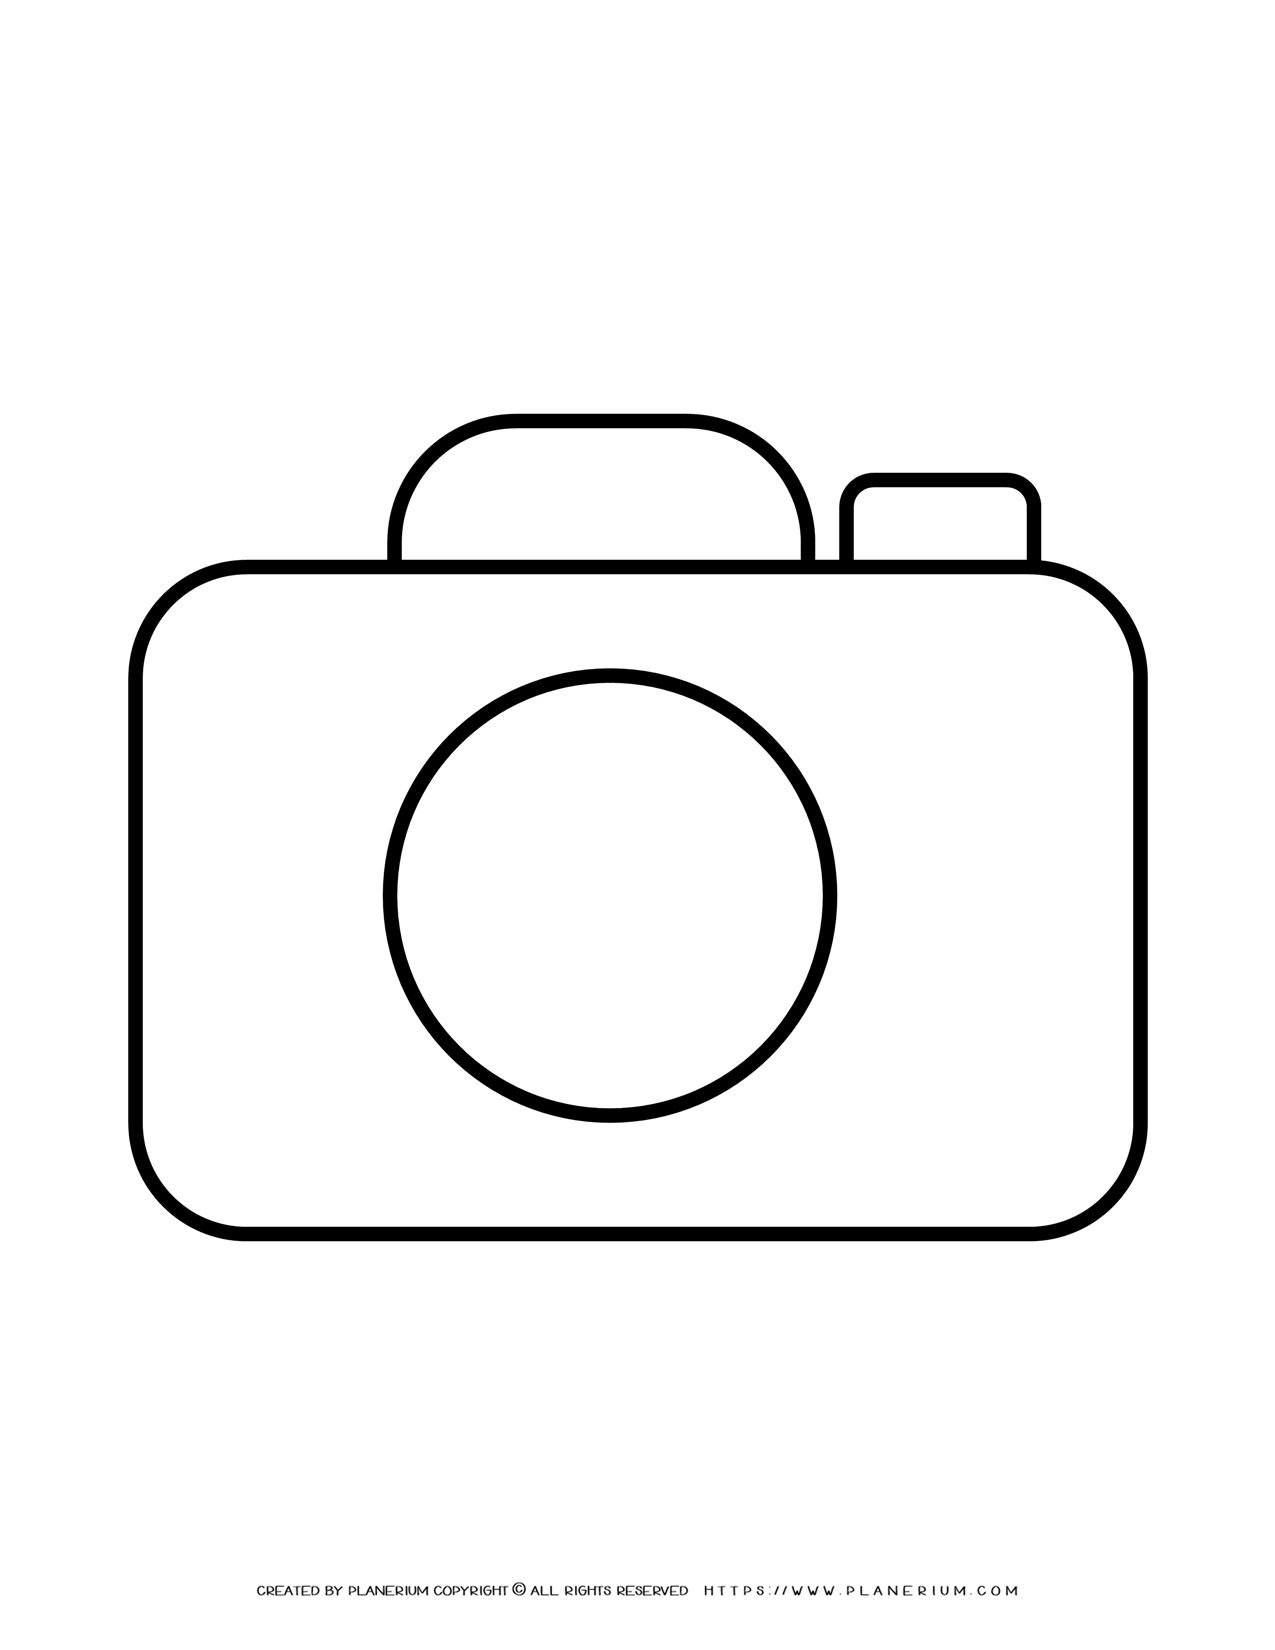 Camera Outline | Planerium